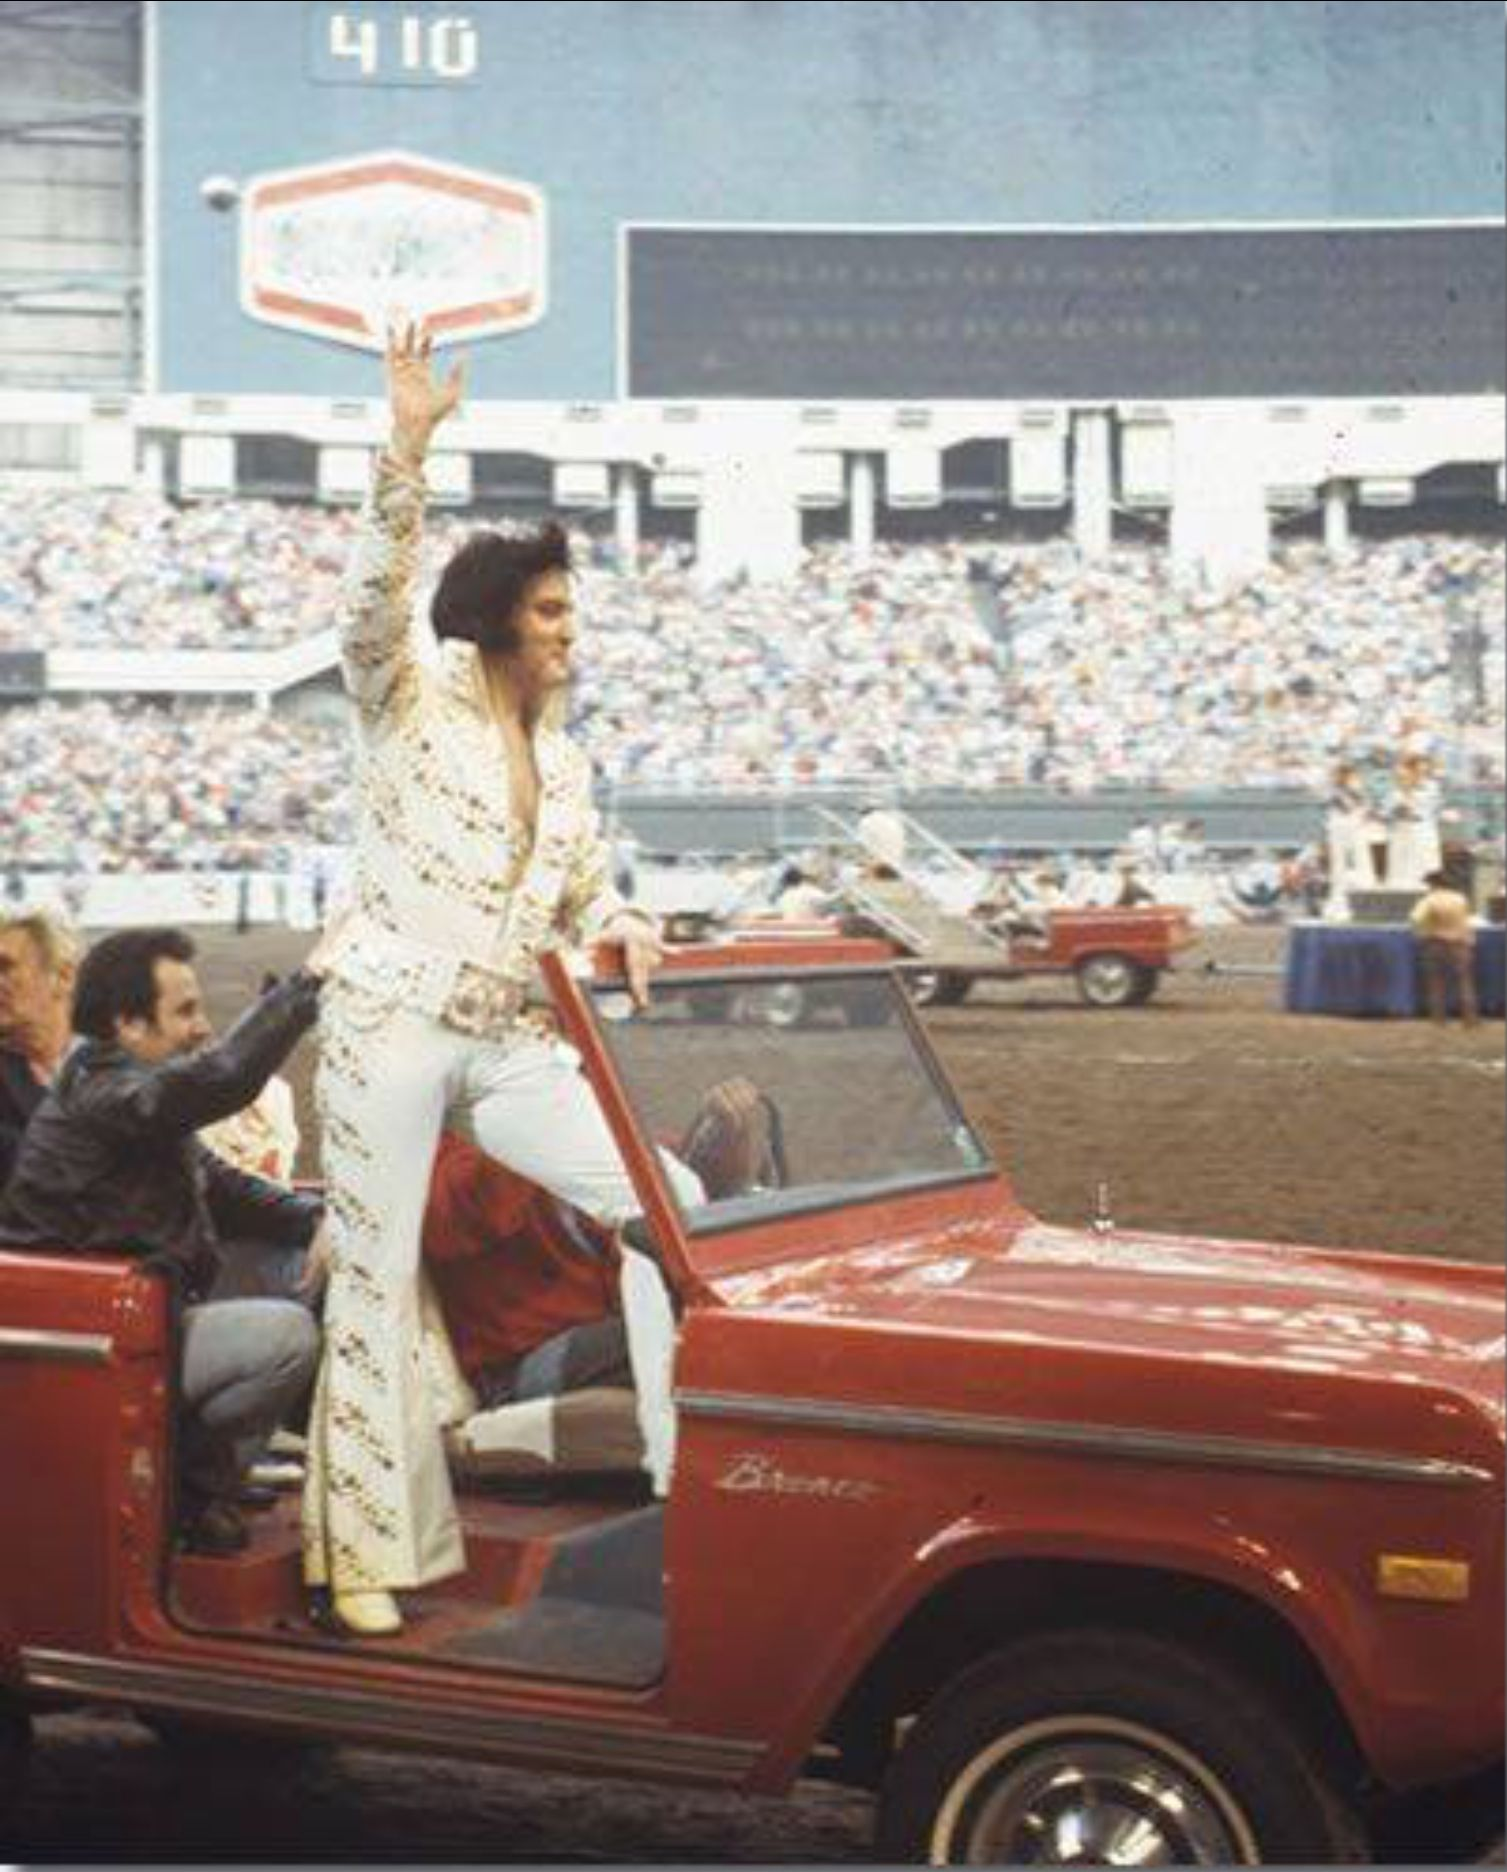 Elvis entering the Houston astrodome in a Ford Bronco   Elvis ... 8939bcfaf0